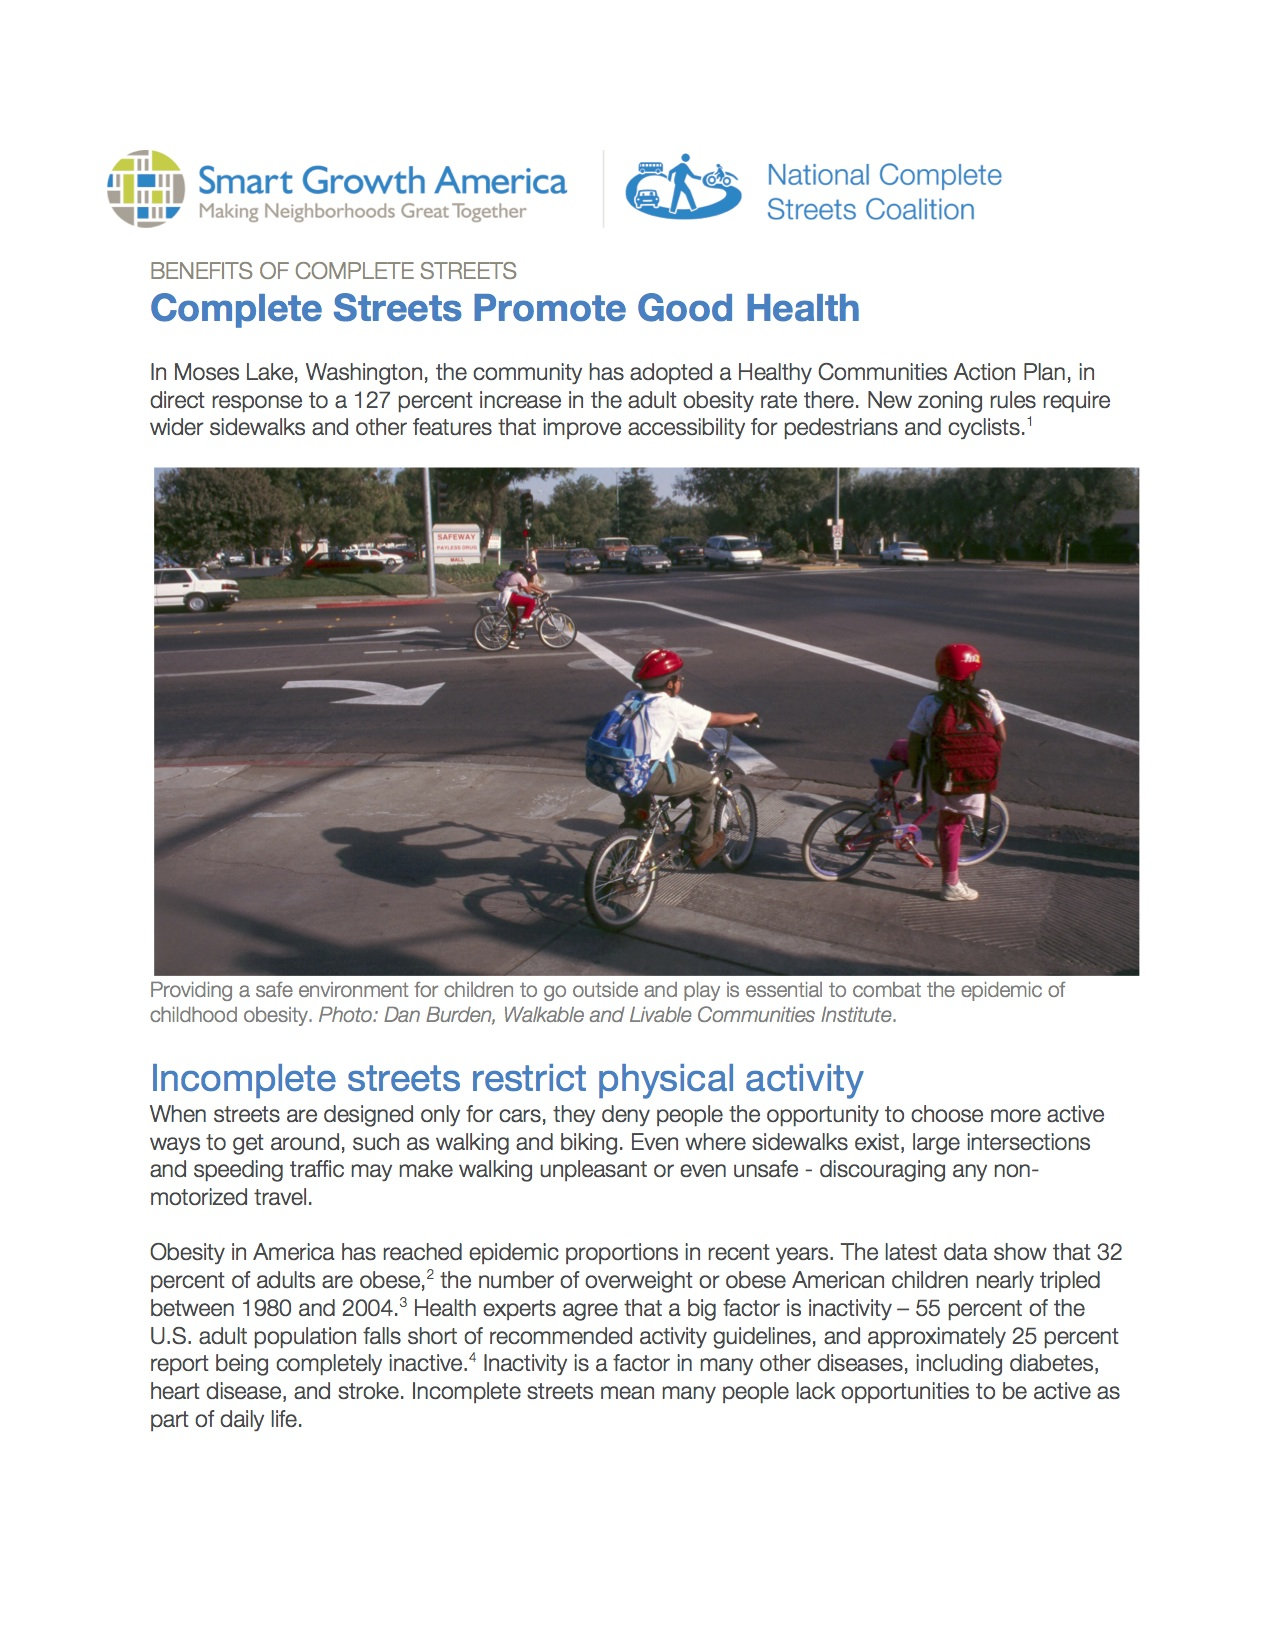 Health: Benefits of Complete Streets